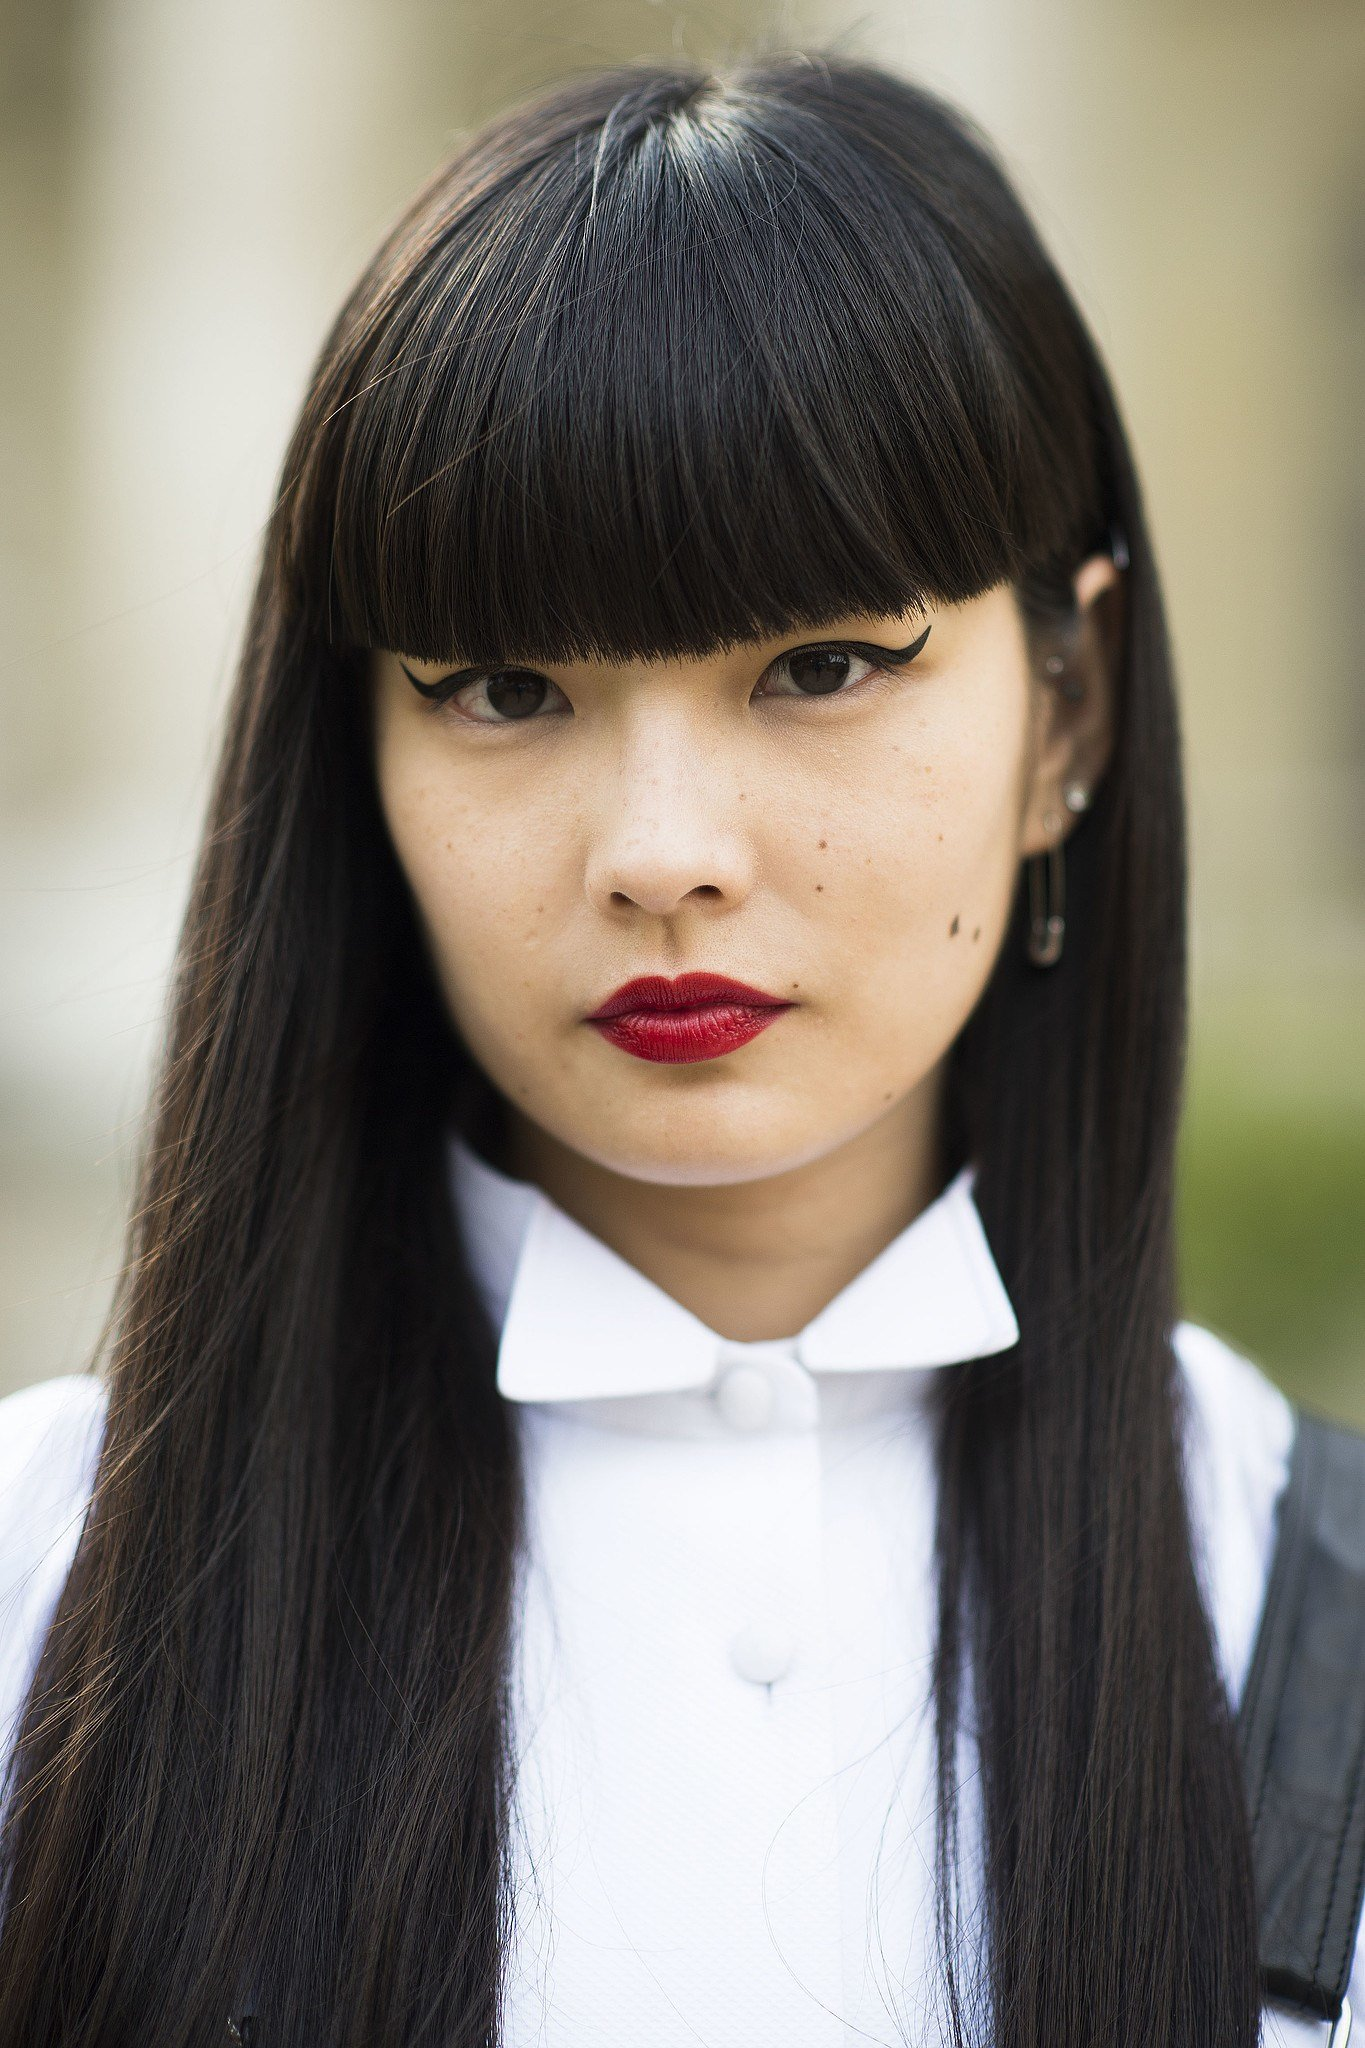 The Best 4 Bangs Hairstyles To Bang Or Not To Bang Fashion Tag Blog Pictures